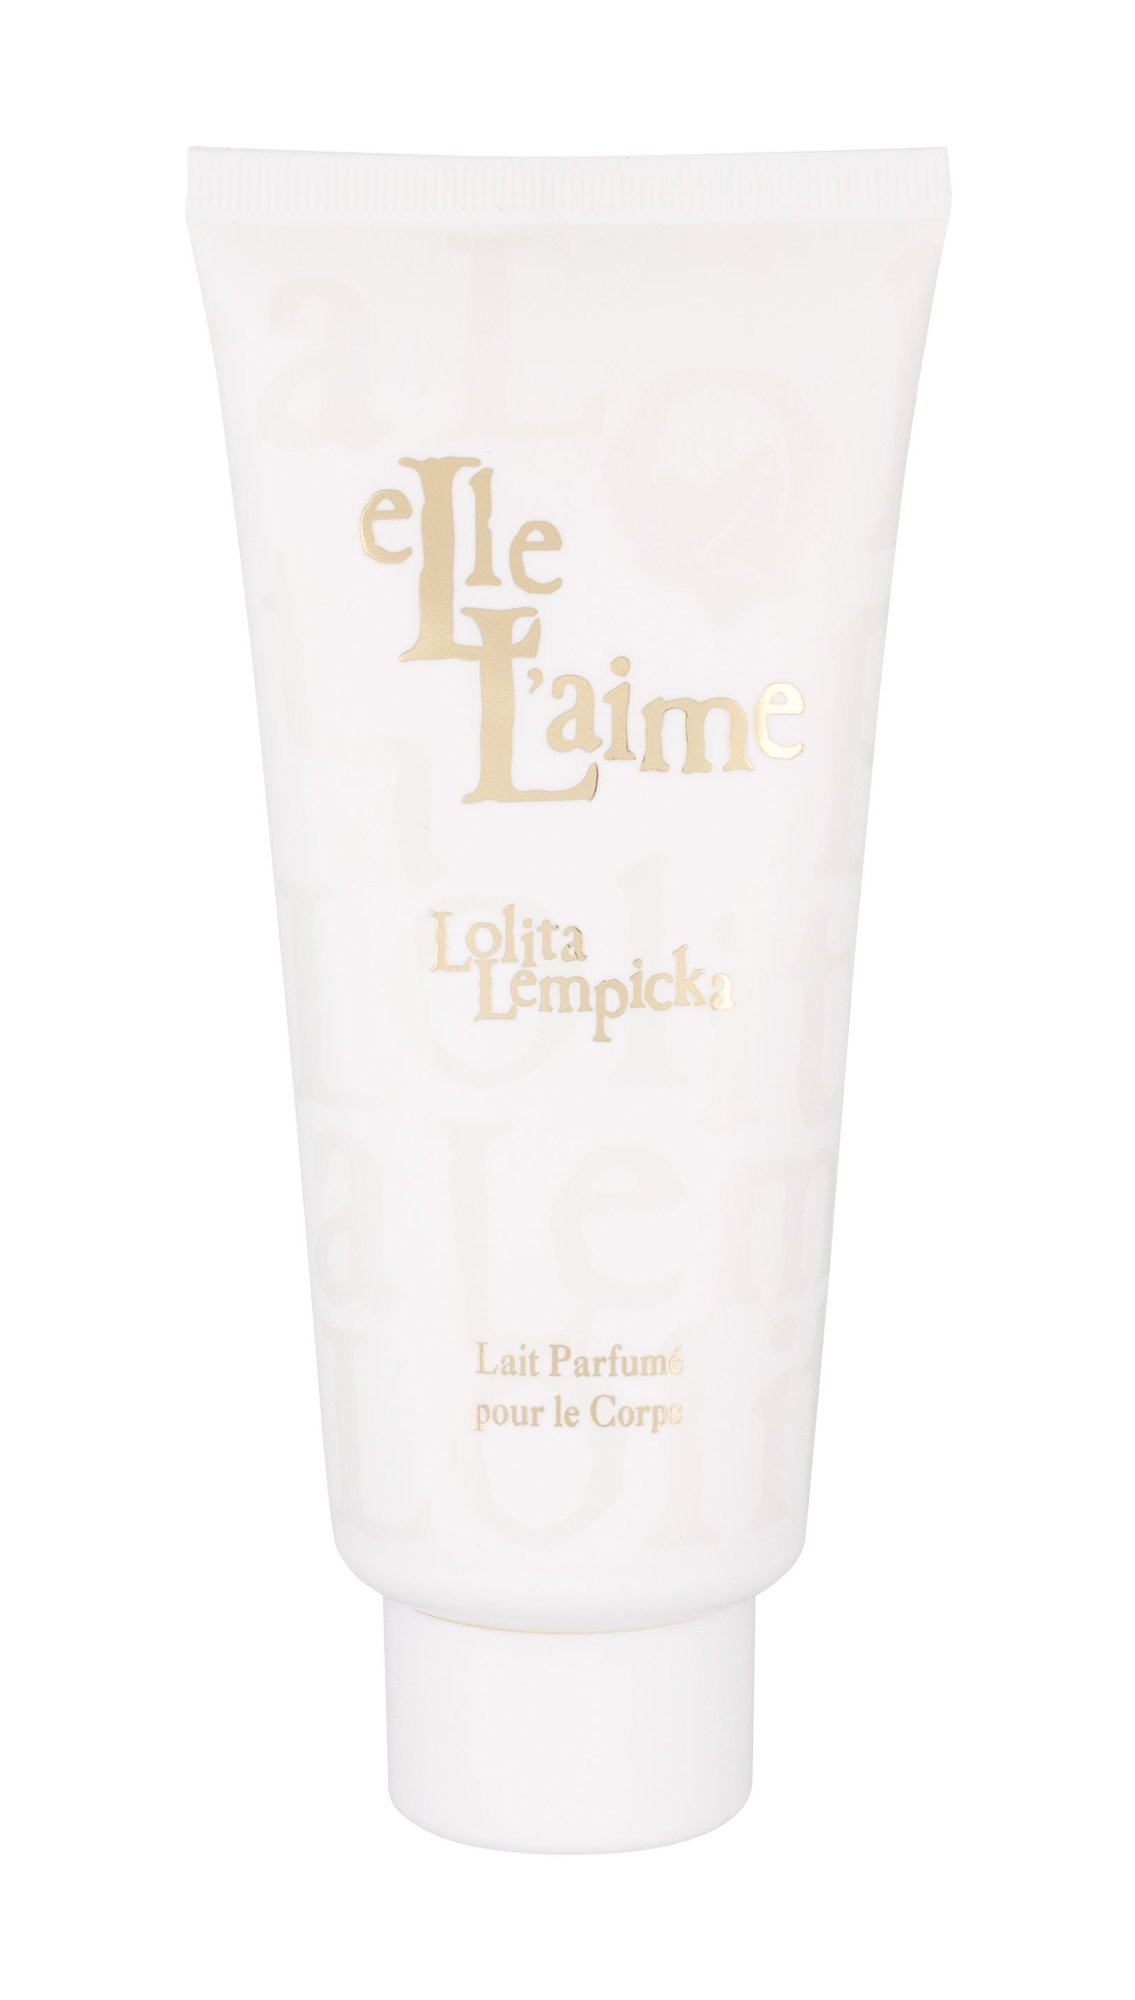 Lolita Lempicka L L´Aime Body lotion 200ml